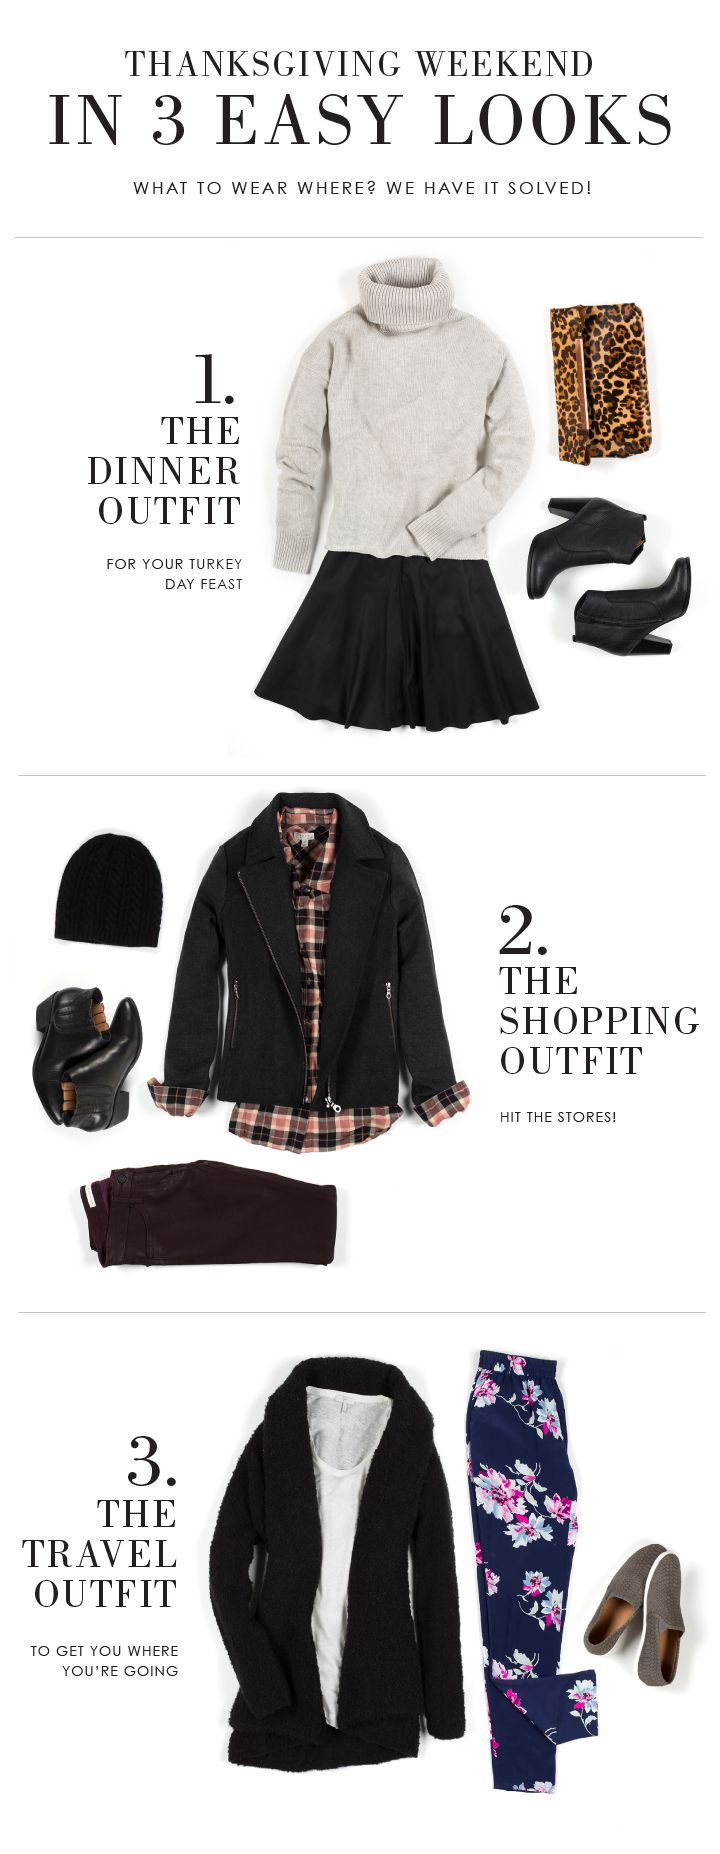 Shop Now: Thanksgiving Outfit Ideas >> click to shop the post!